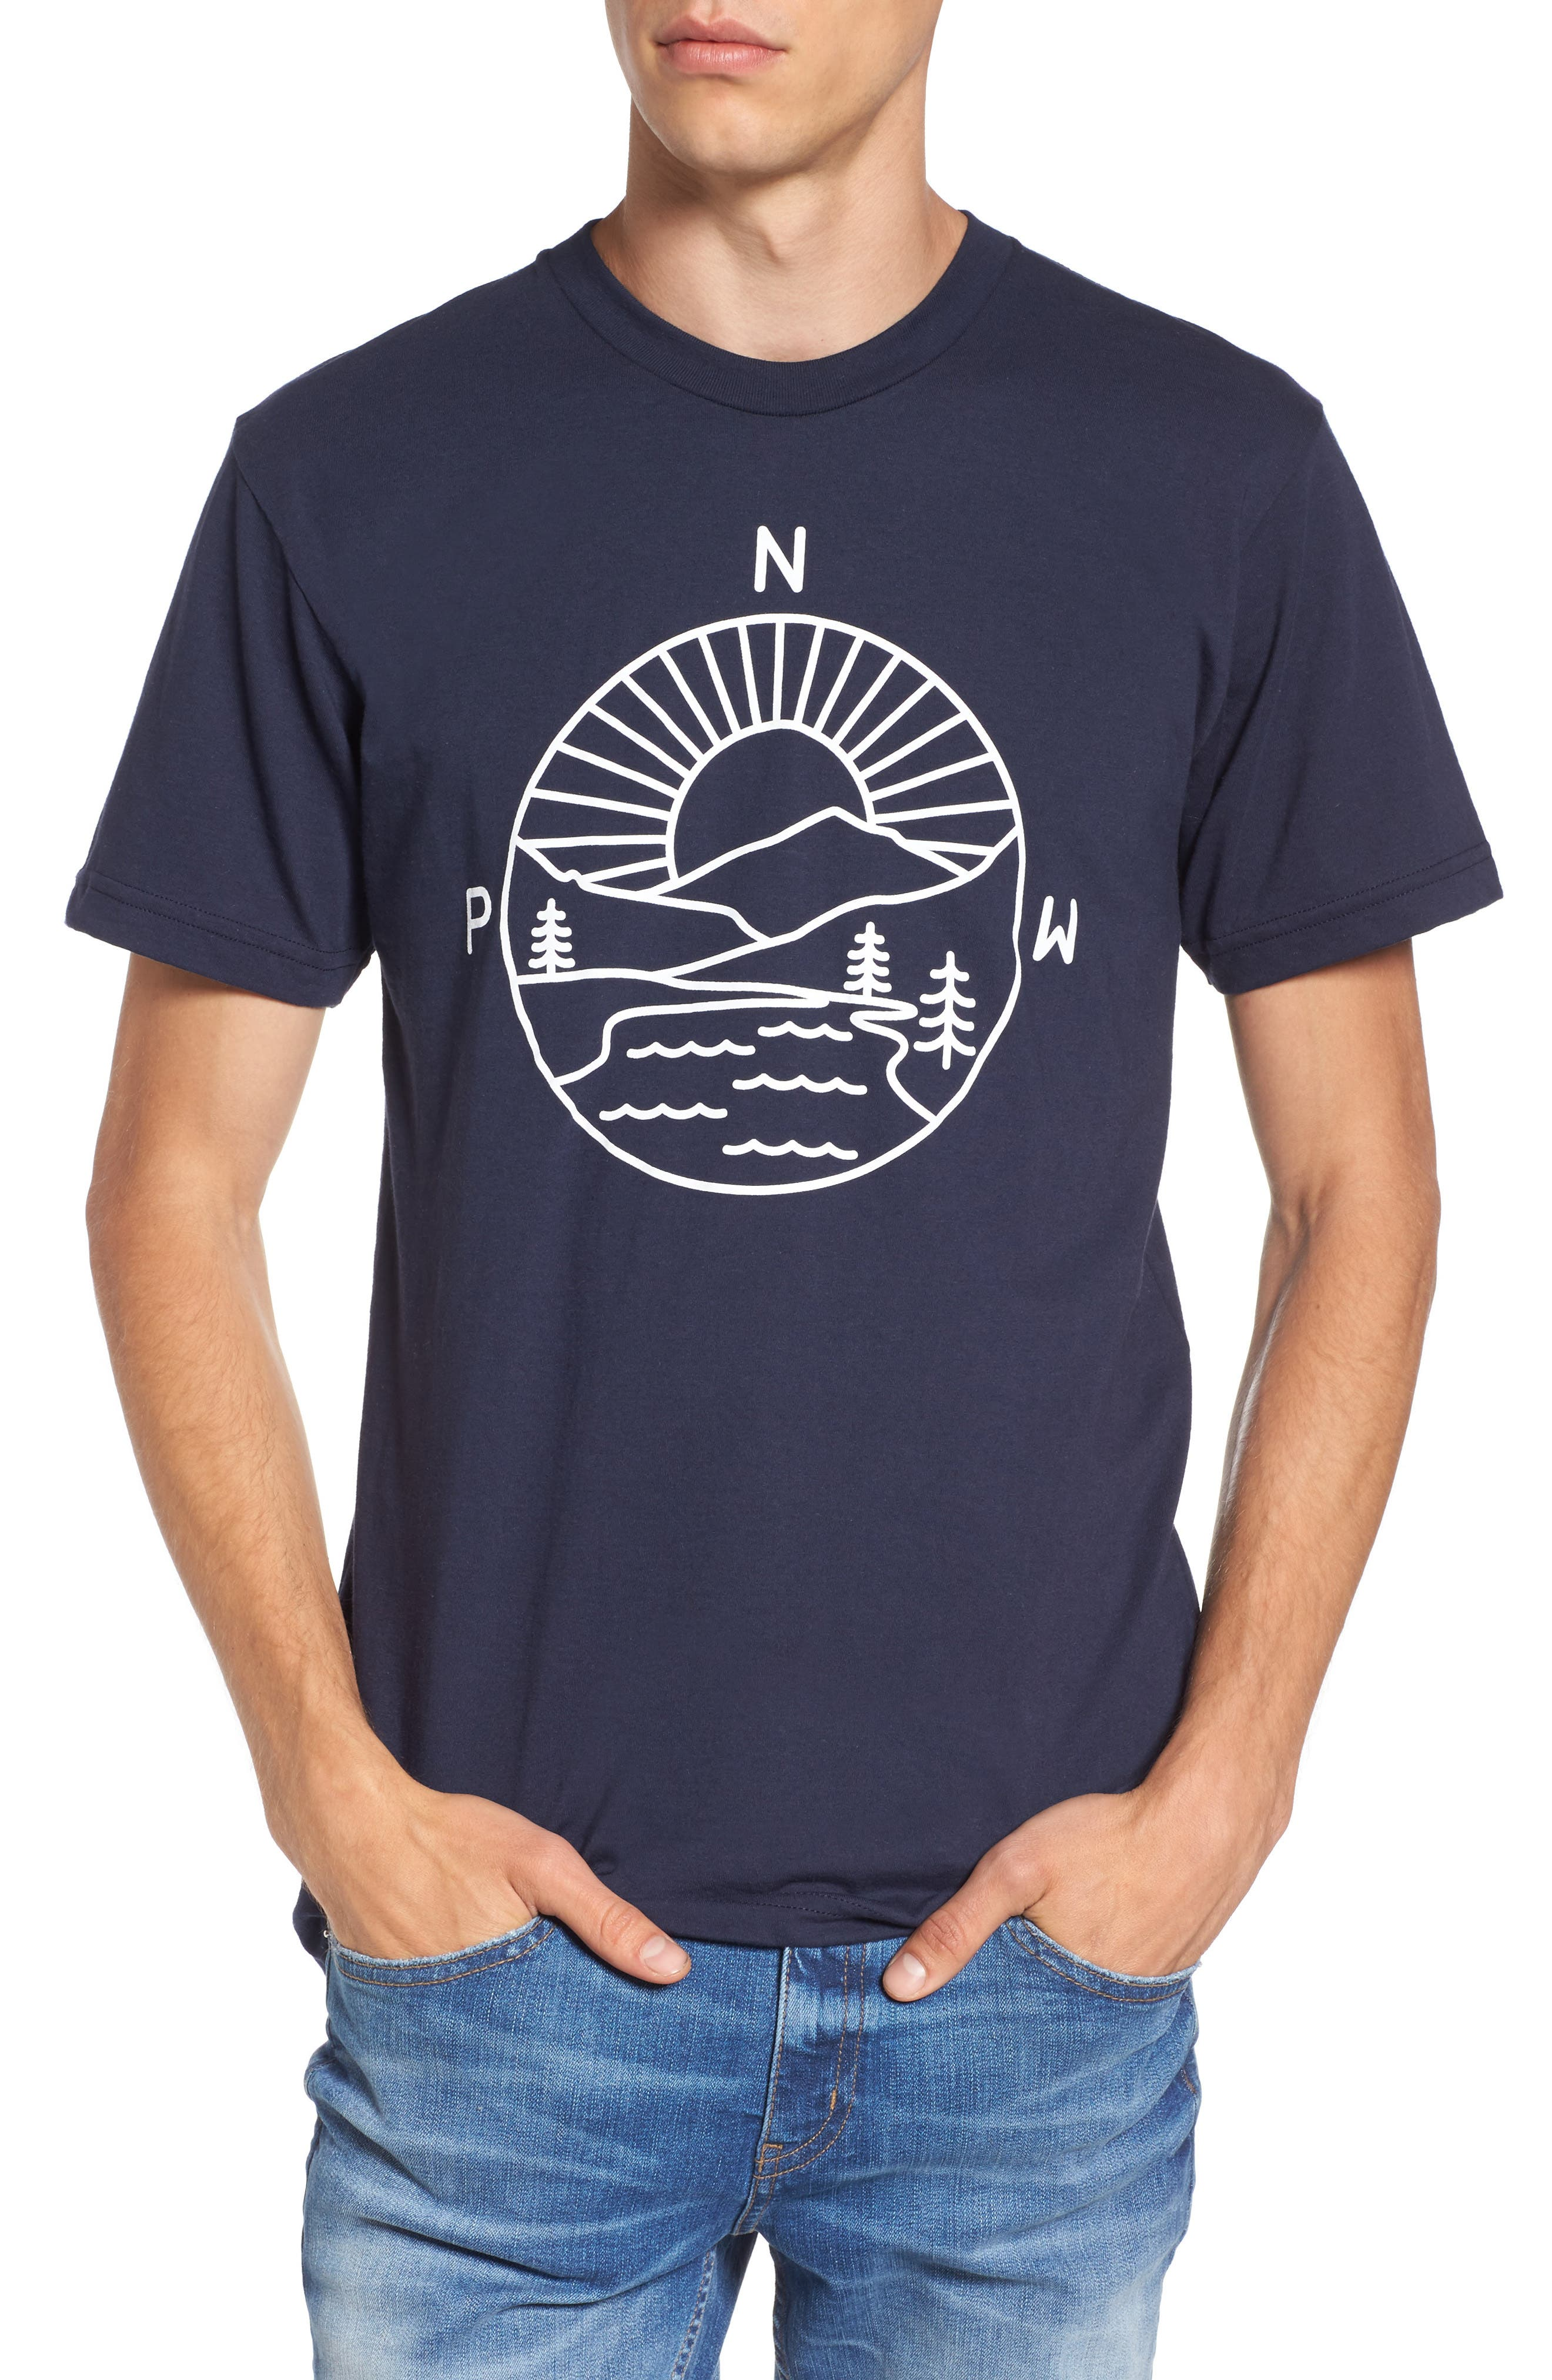 Alternate Image 1 Selected - Casual Industrees PNW Explorer T-Shirt